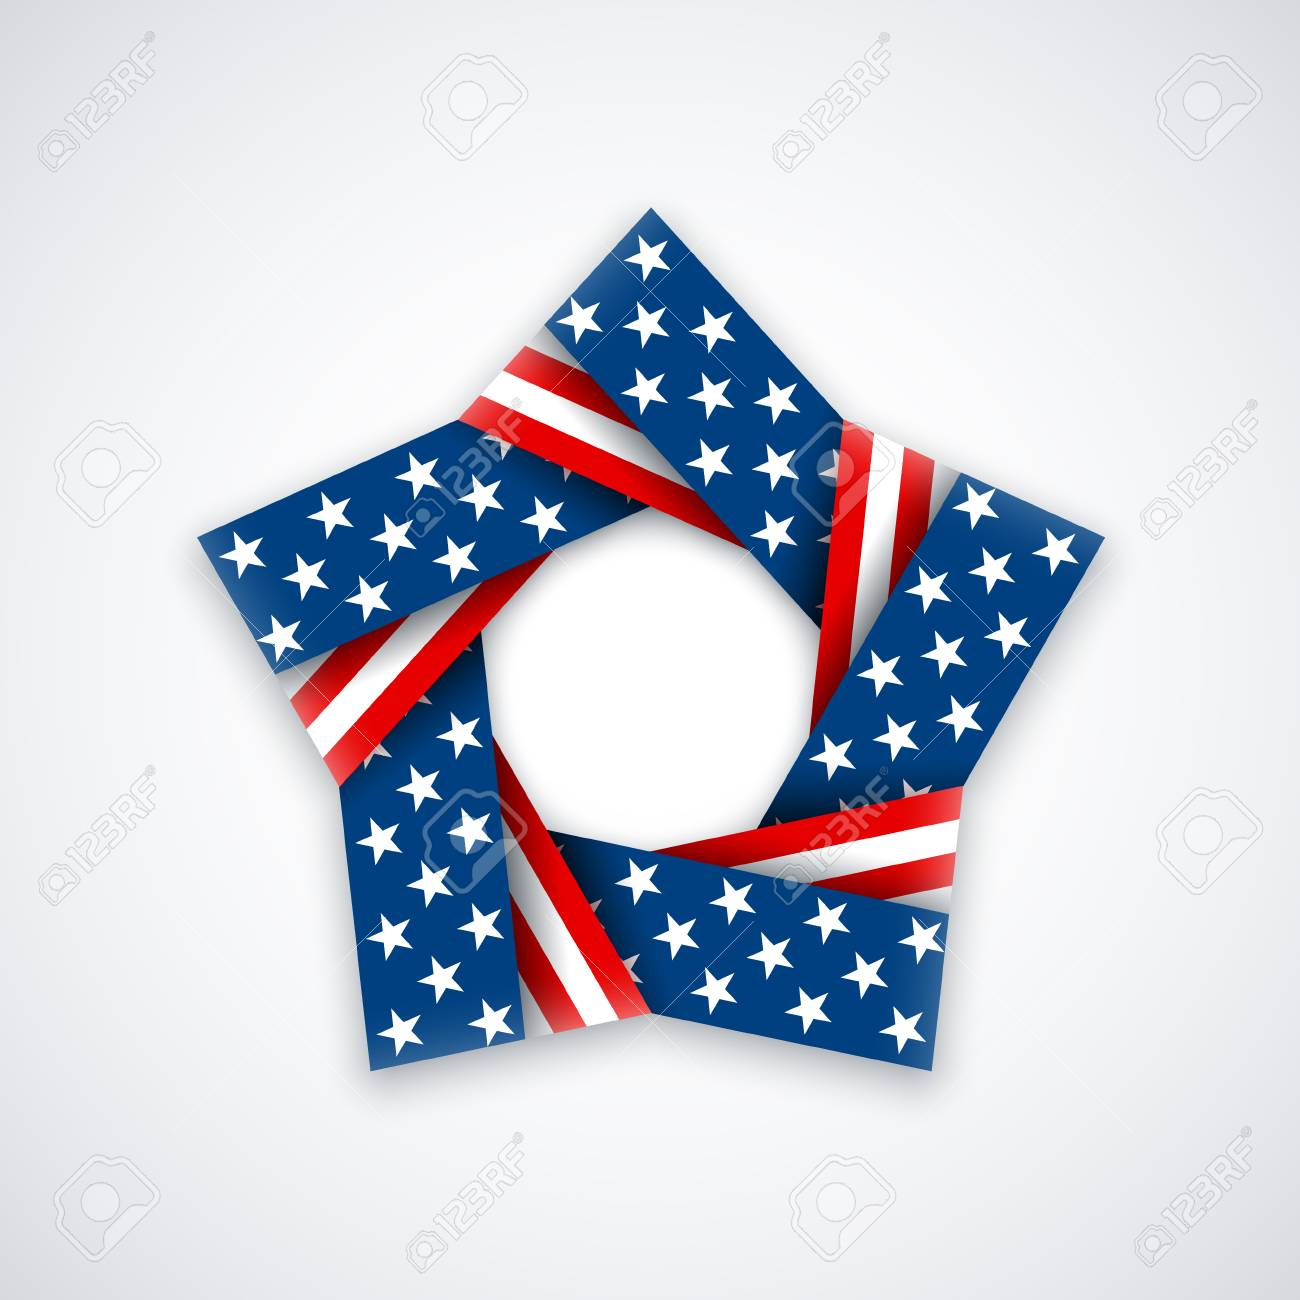 Star made of double ribbon with american flag colors and symbols star made of double ribbon with american flag colors and symbols vector illustration for usa biocorpaavc